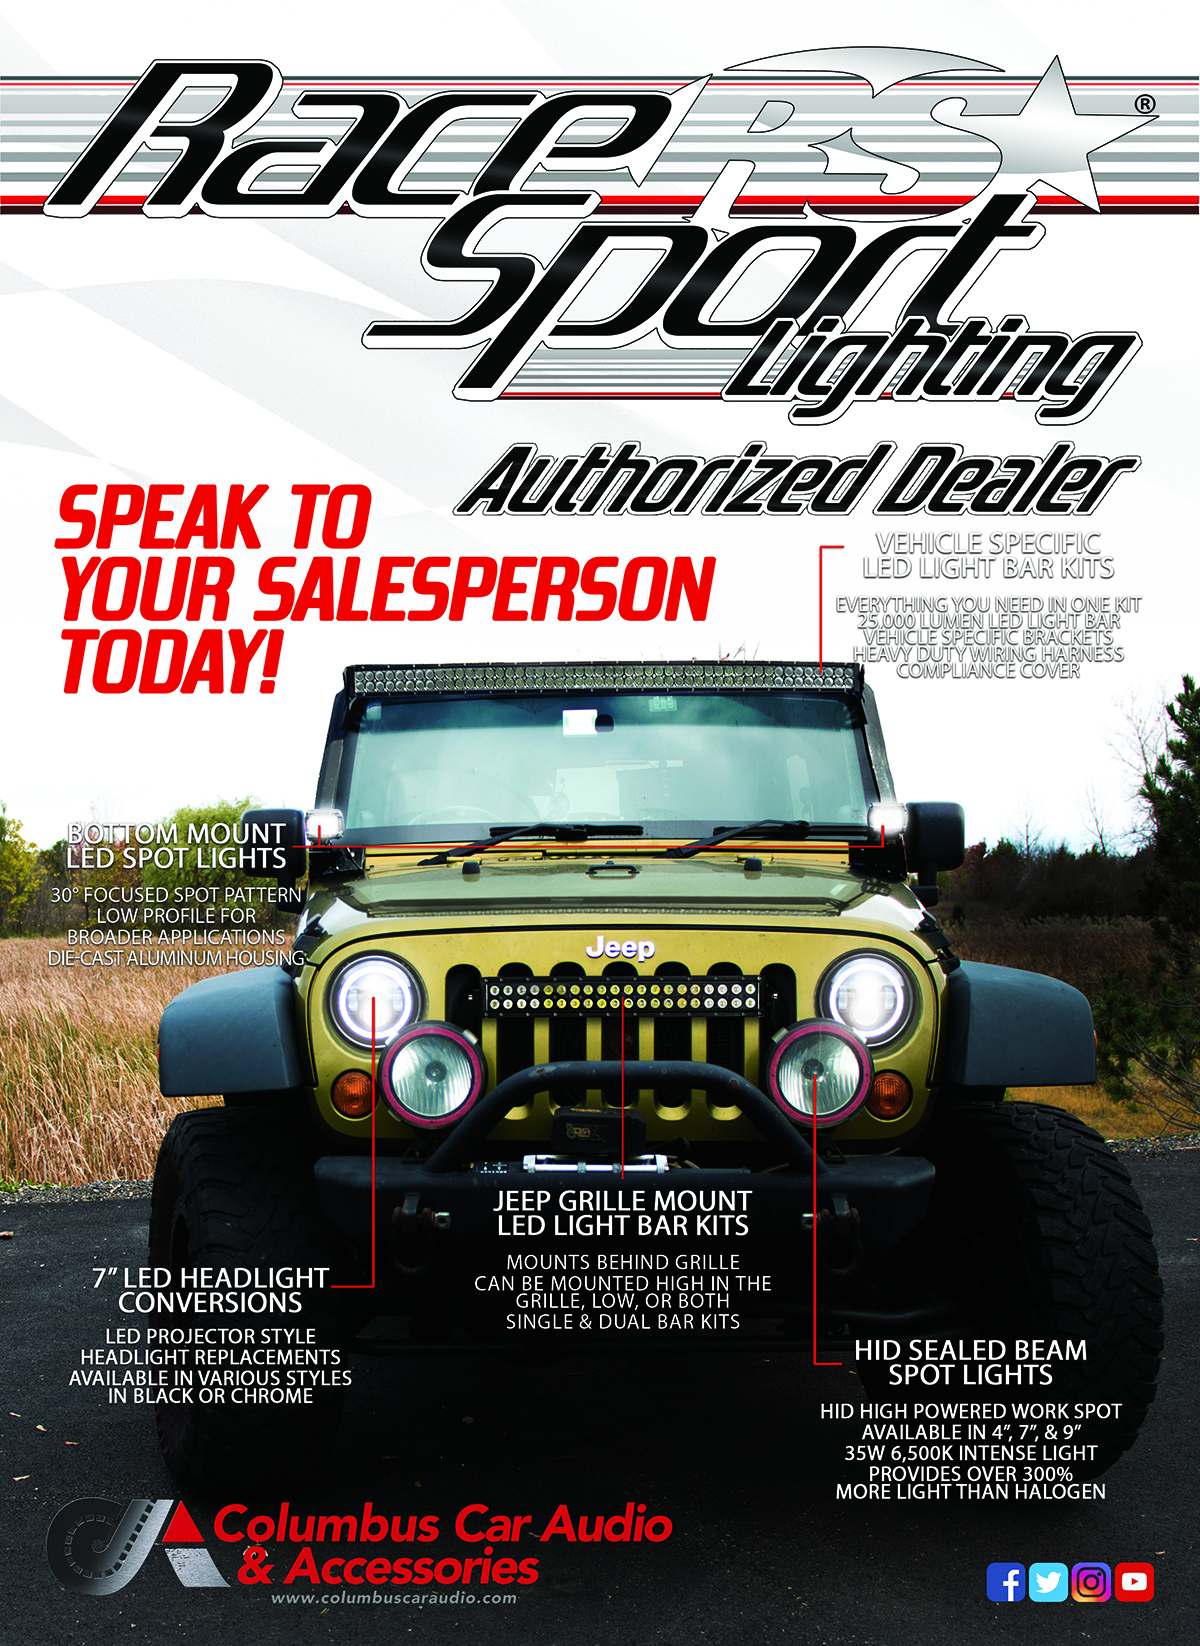 CCA_Jeep - Columbus Car Audio